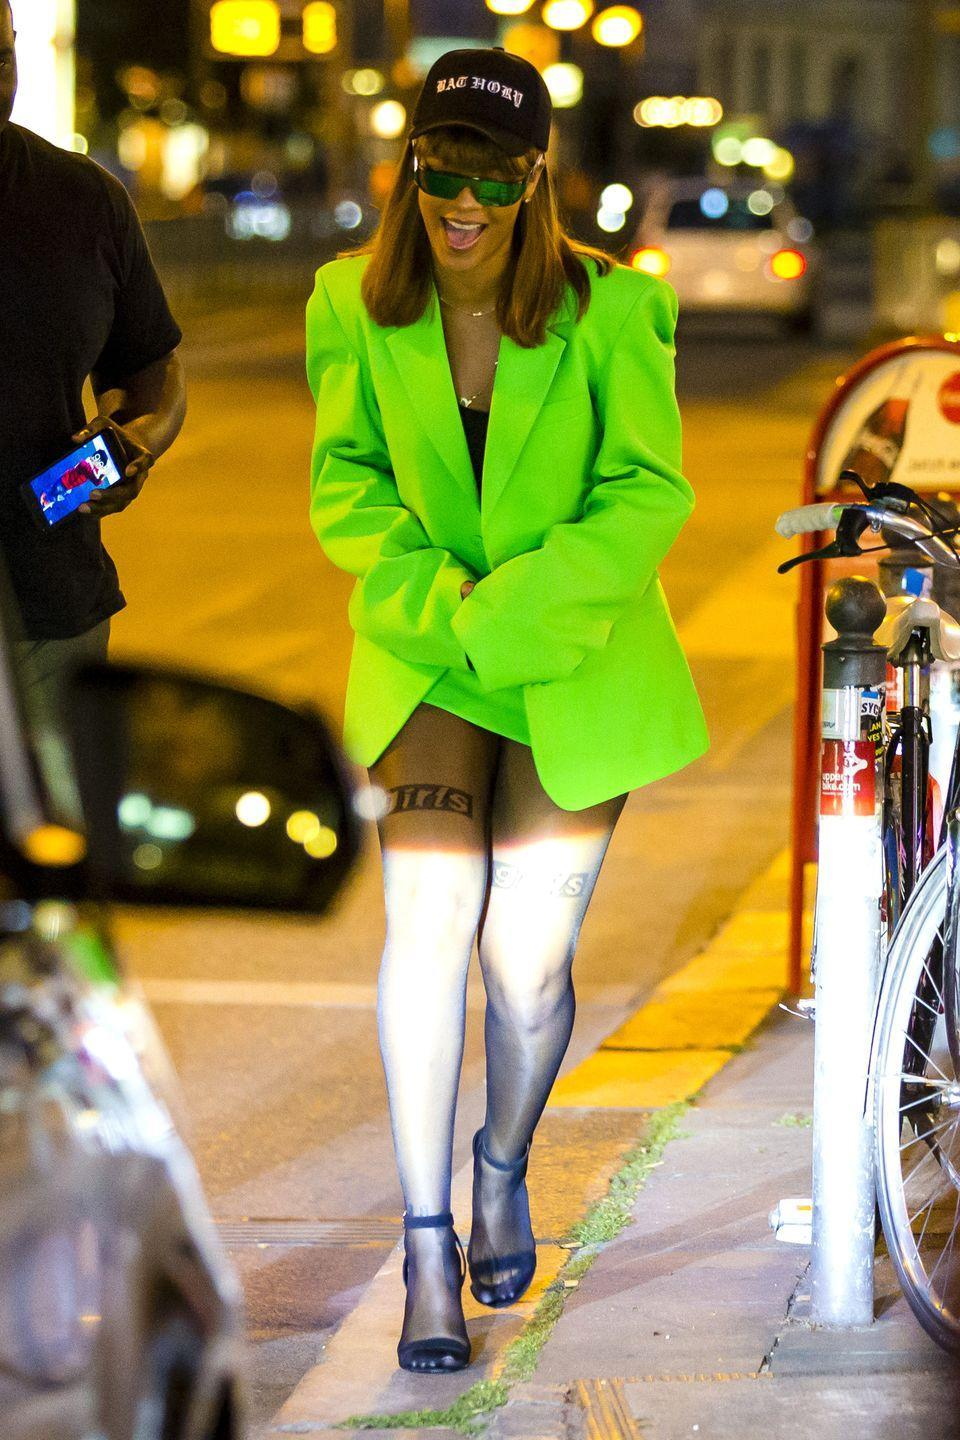 "<p>In a lime green Vetements blazer and skirt co-ord, black top, Alexander Wang tights, black heeled sandals, reflective Dior sunglasses and a dad hat while out in Berlin. She's probably smiling because <a href=""https://www.harpersbazaar.com/celebrity/latest/news/a17231/rihanna-headless-statue-berlin/"" rel=""nofollow noopener"" target=""_blank"" data-ylk=""slk:she just posed with a massive headless statue"" class=""link rapid-noclick-resp"">she just posed with a massive headless statue</a> she inspired.</p>"